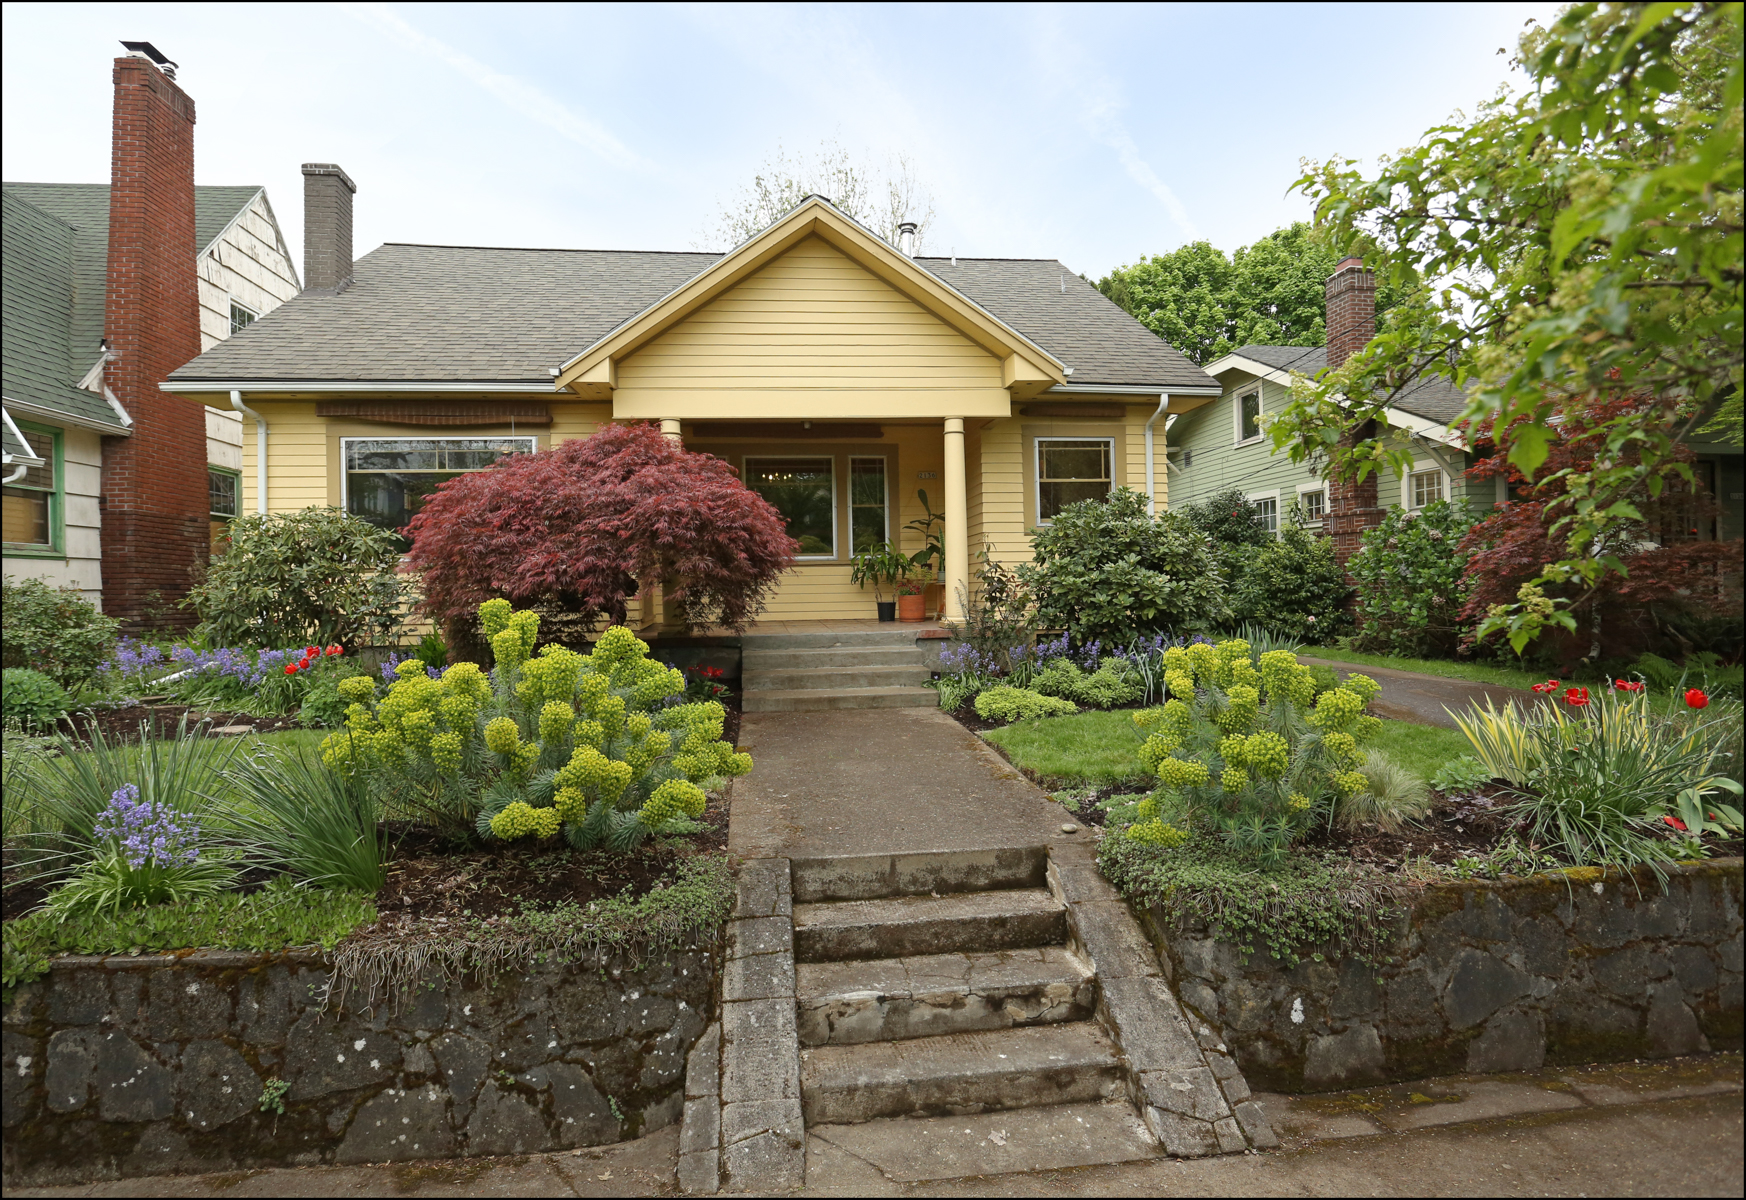 Grant Park/Hollywood Bungalow 2136 NE 38th avenue  $565,000  SOLD - $615,990